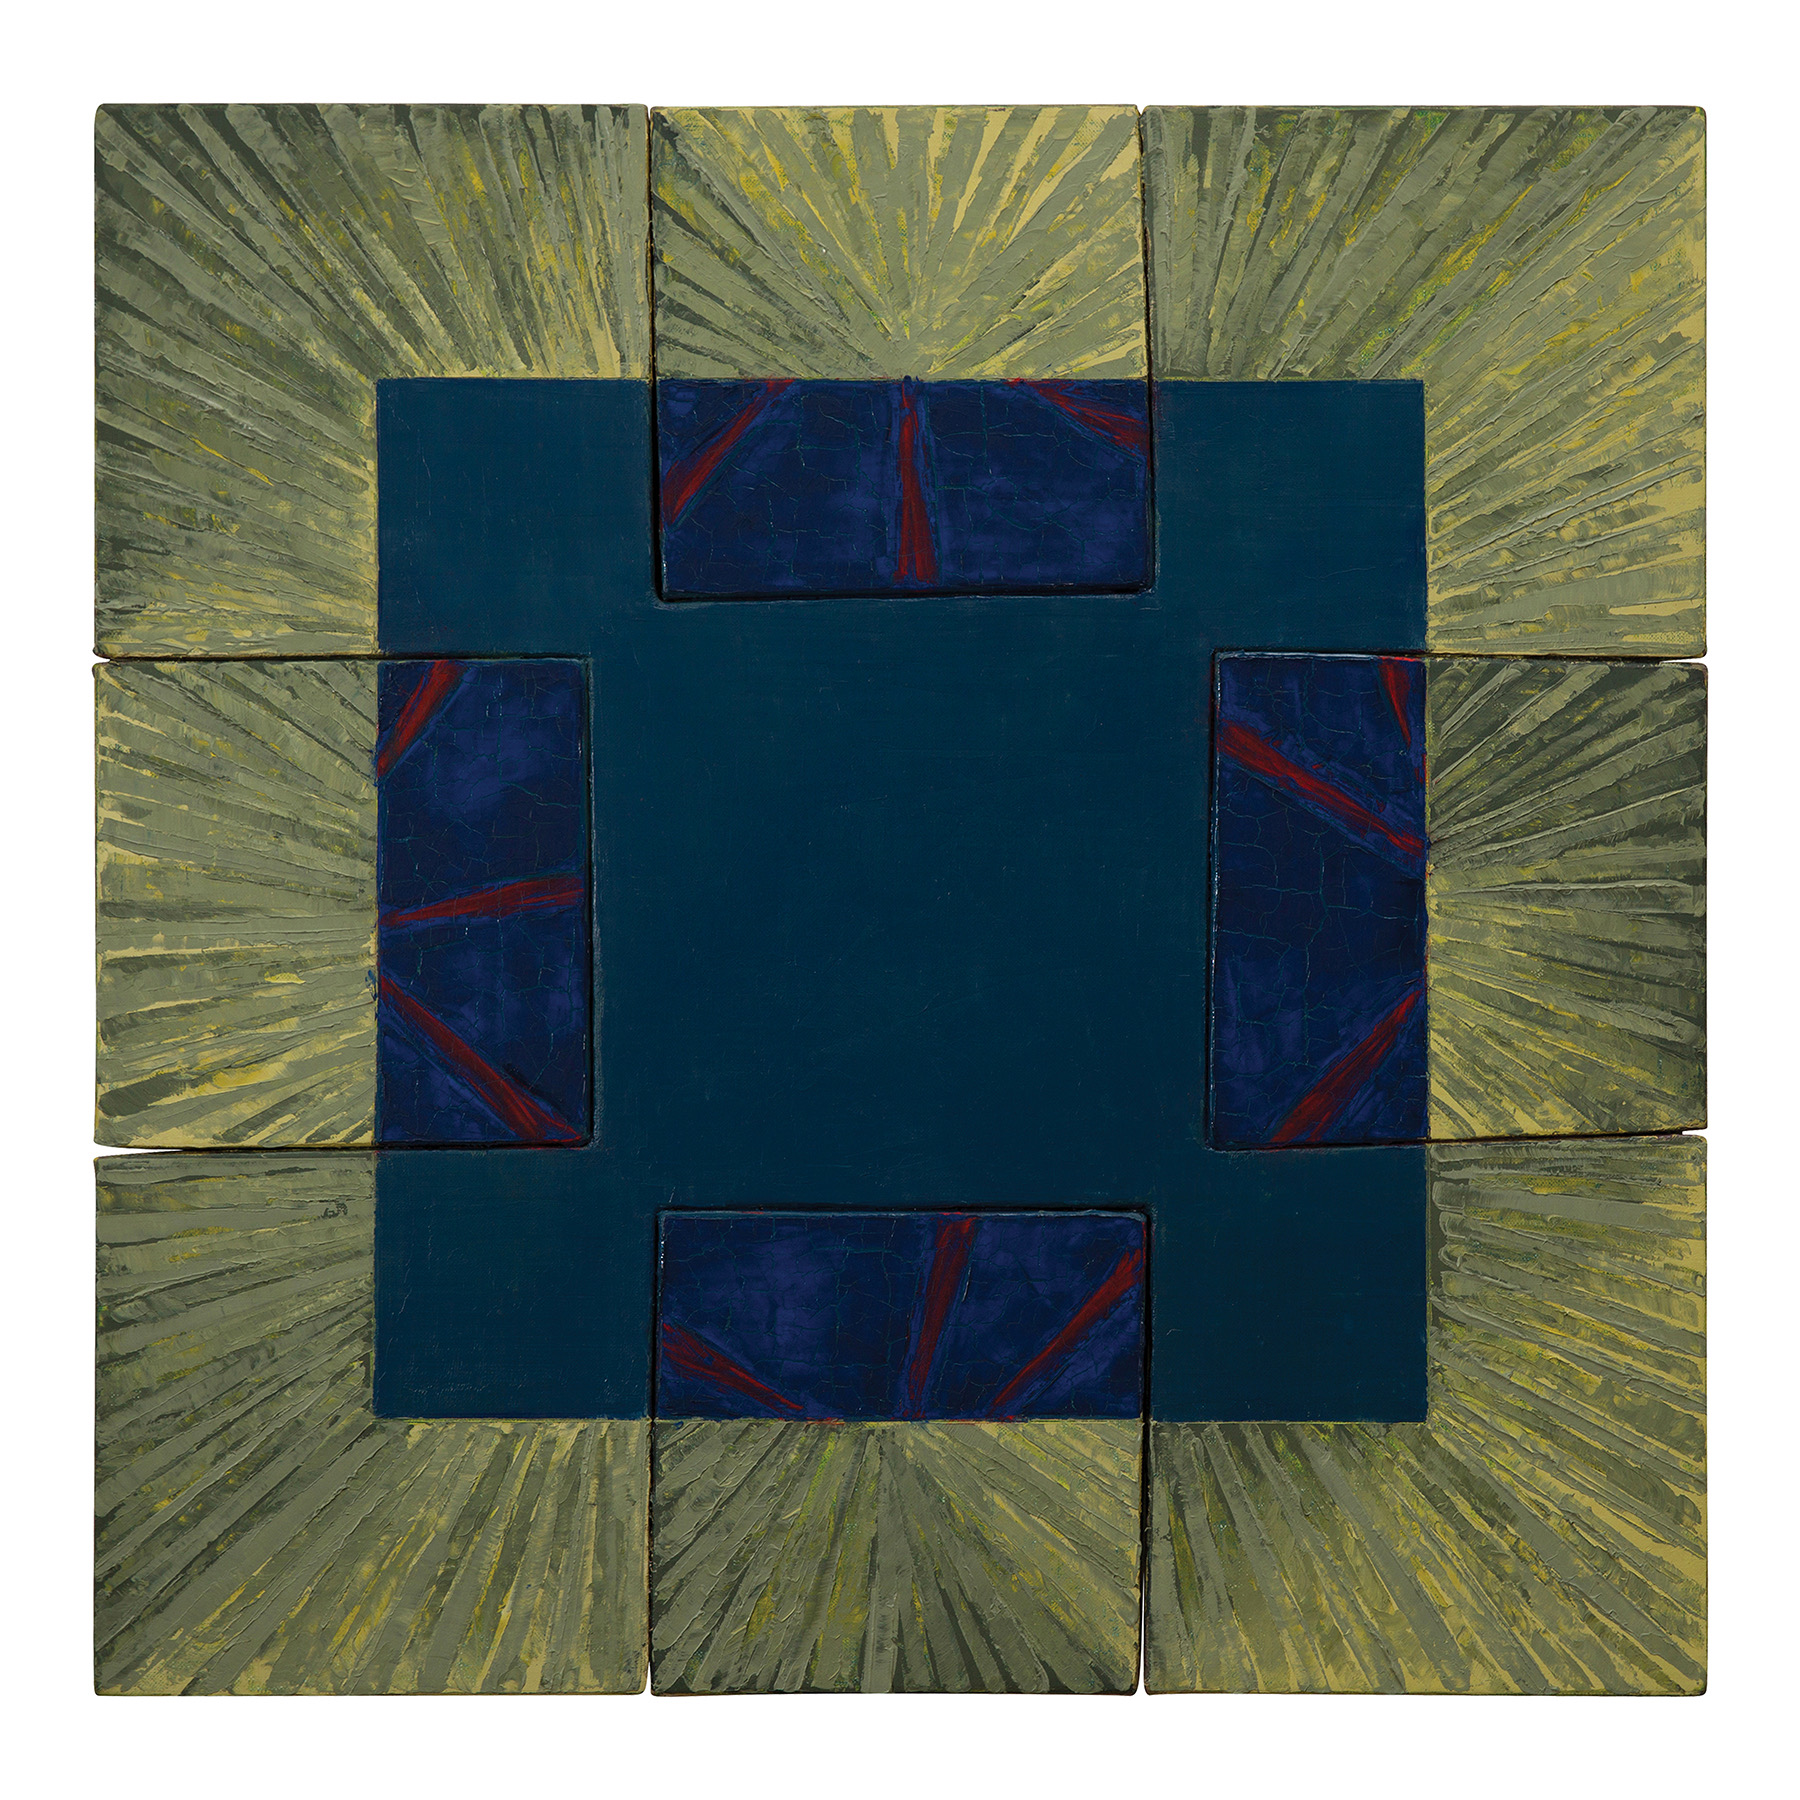 Out of the Blue (1991).  oil on joined linen canvas slabs, 26 x 26 inches..